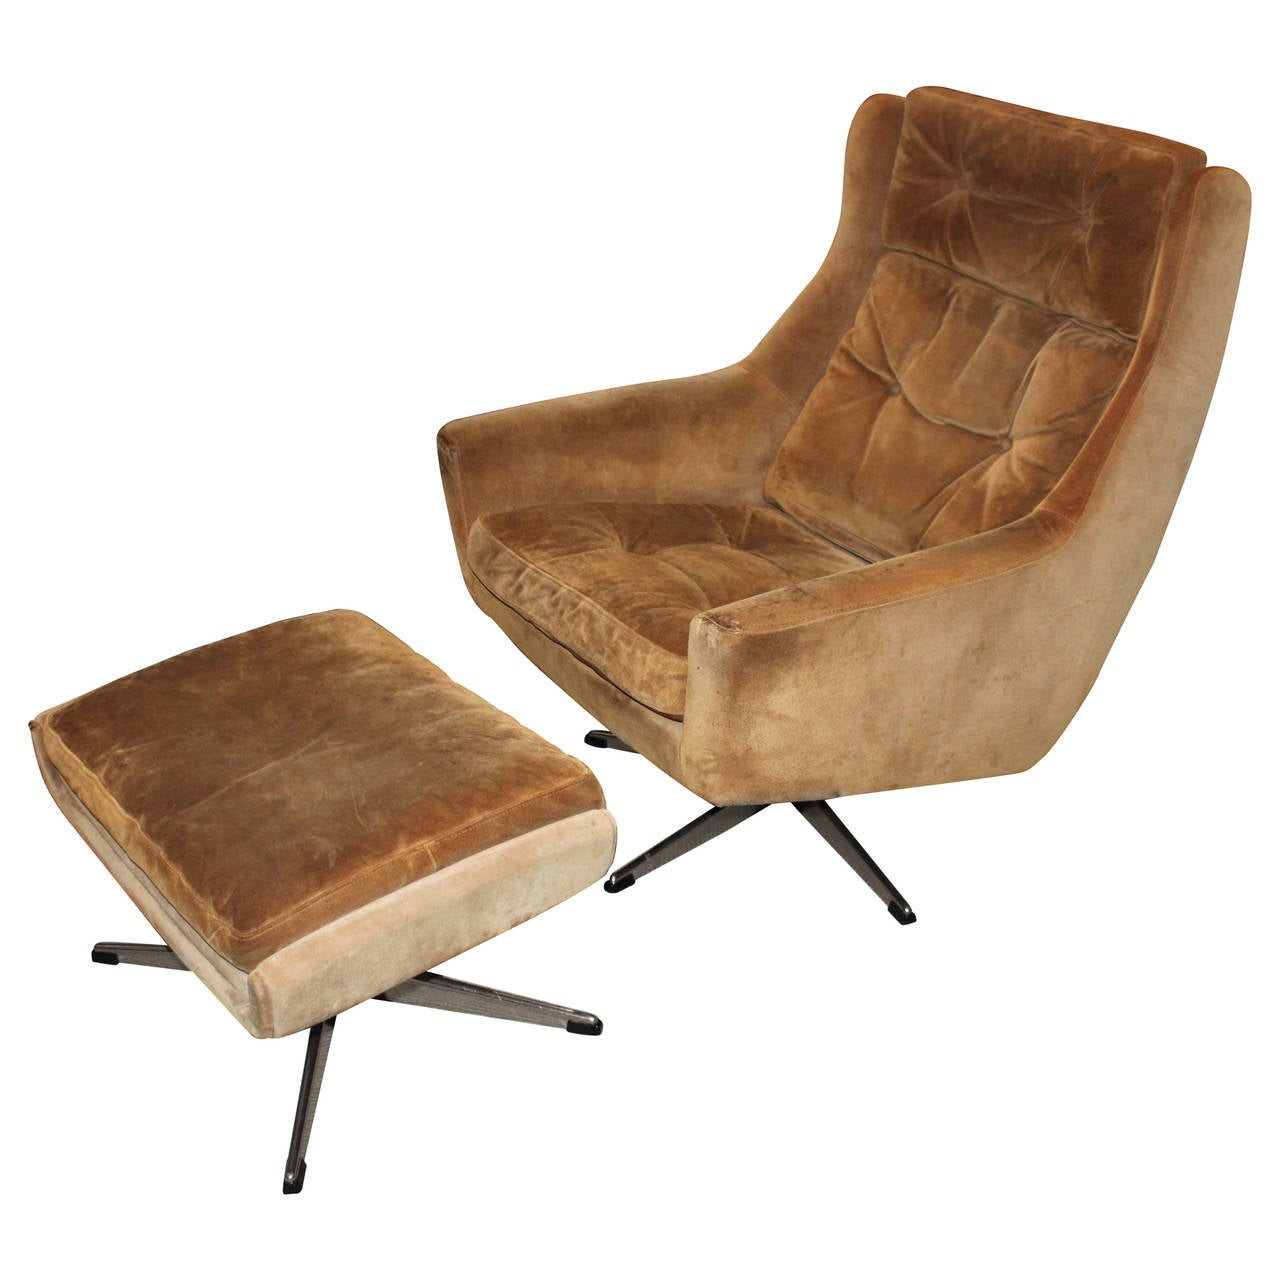 Mid century modern overman lounge chair with ottoman at for Stylish lounge furniture